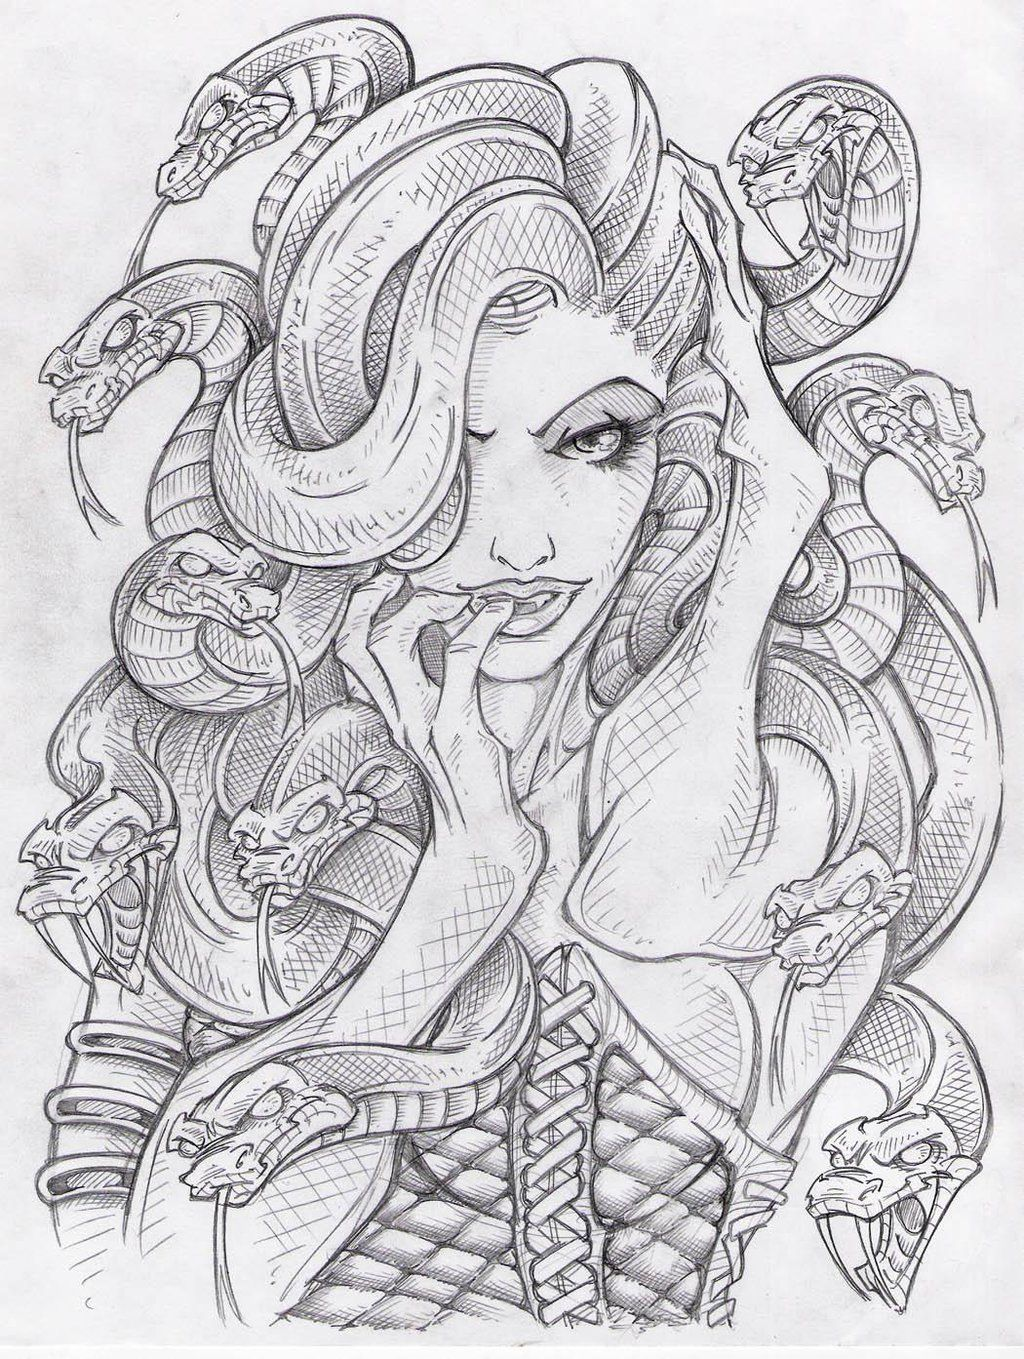 Medusa 13 By Sidewinder72 On DeviantART